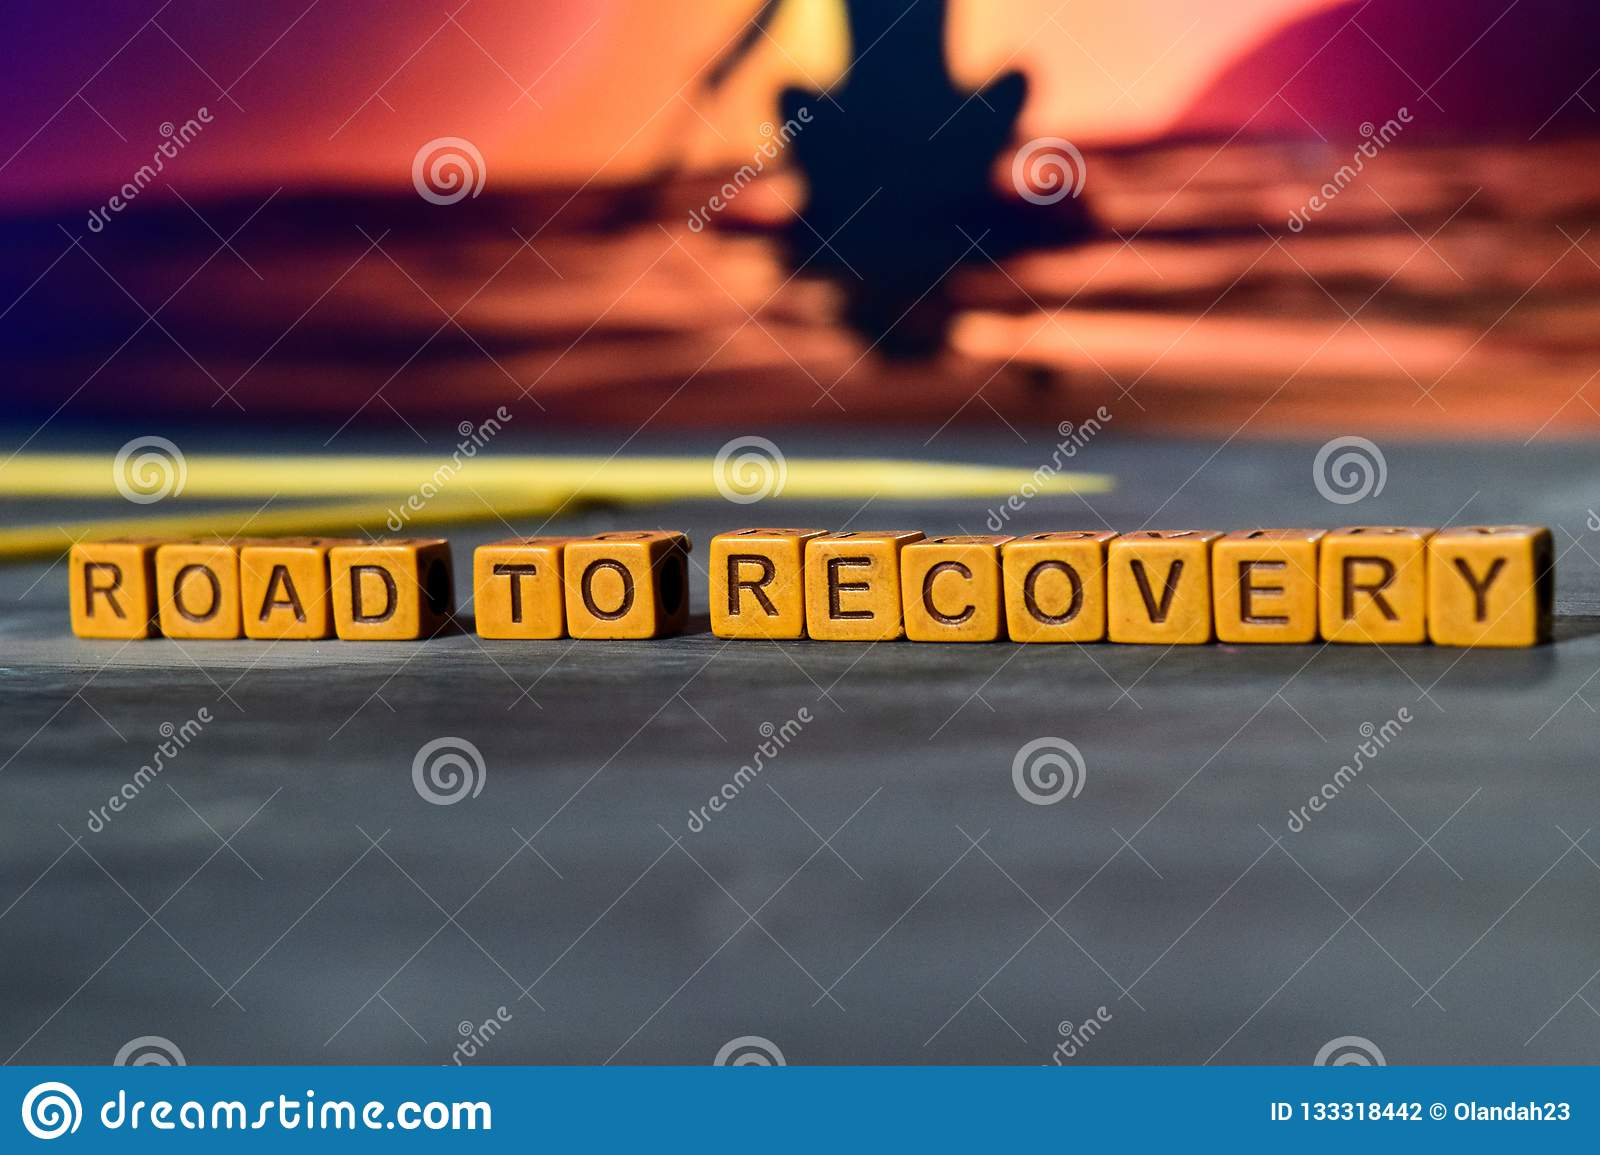 Road to recovery on wooden blocks. Cross processed image with bokeh background